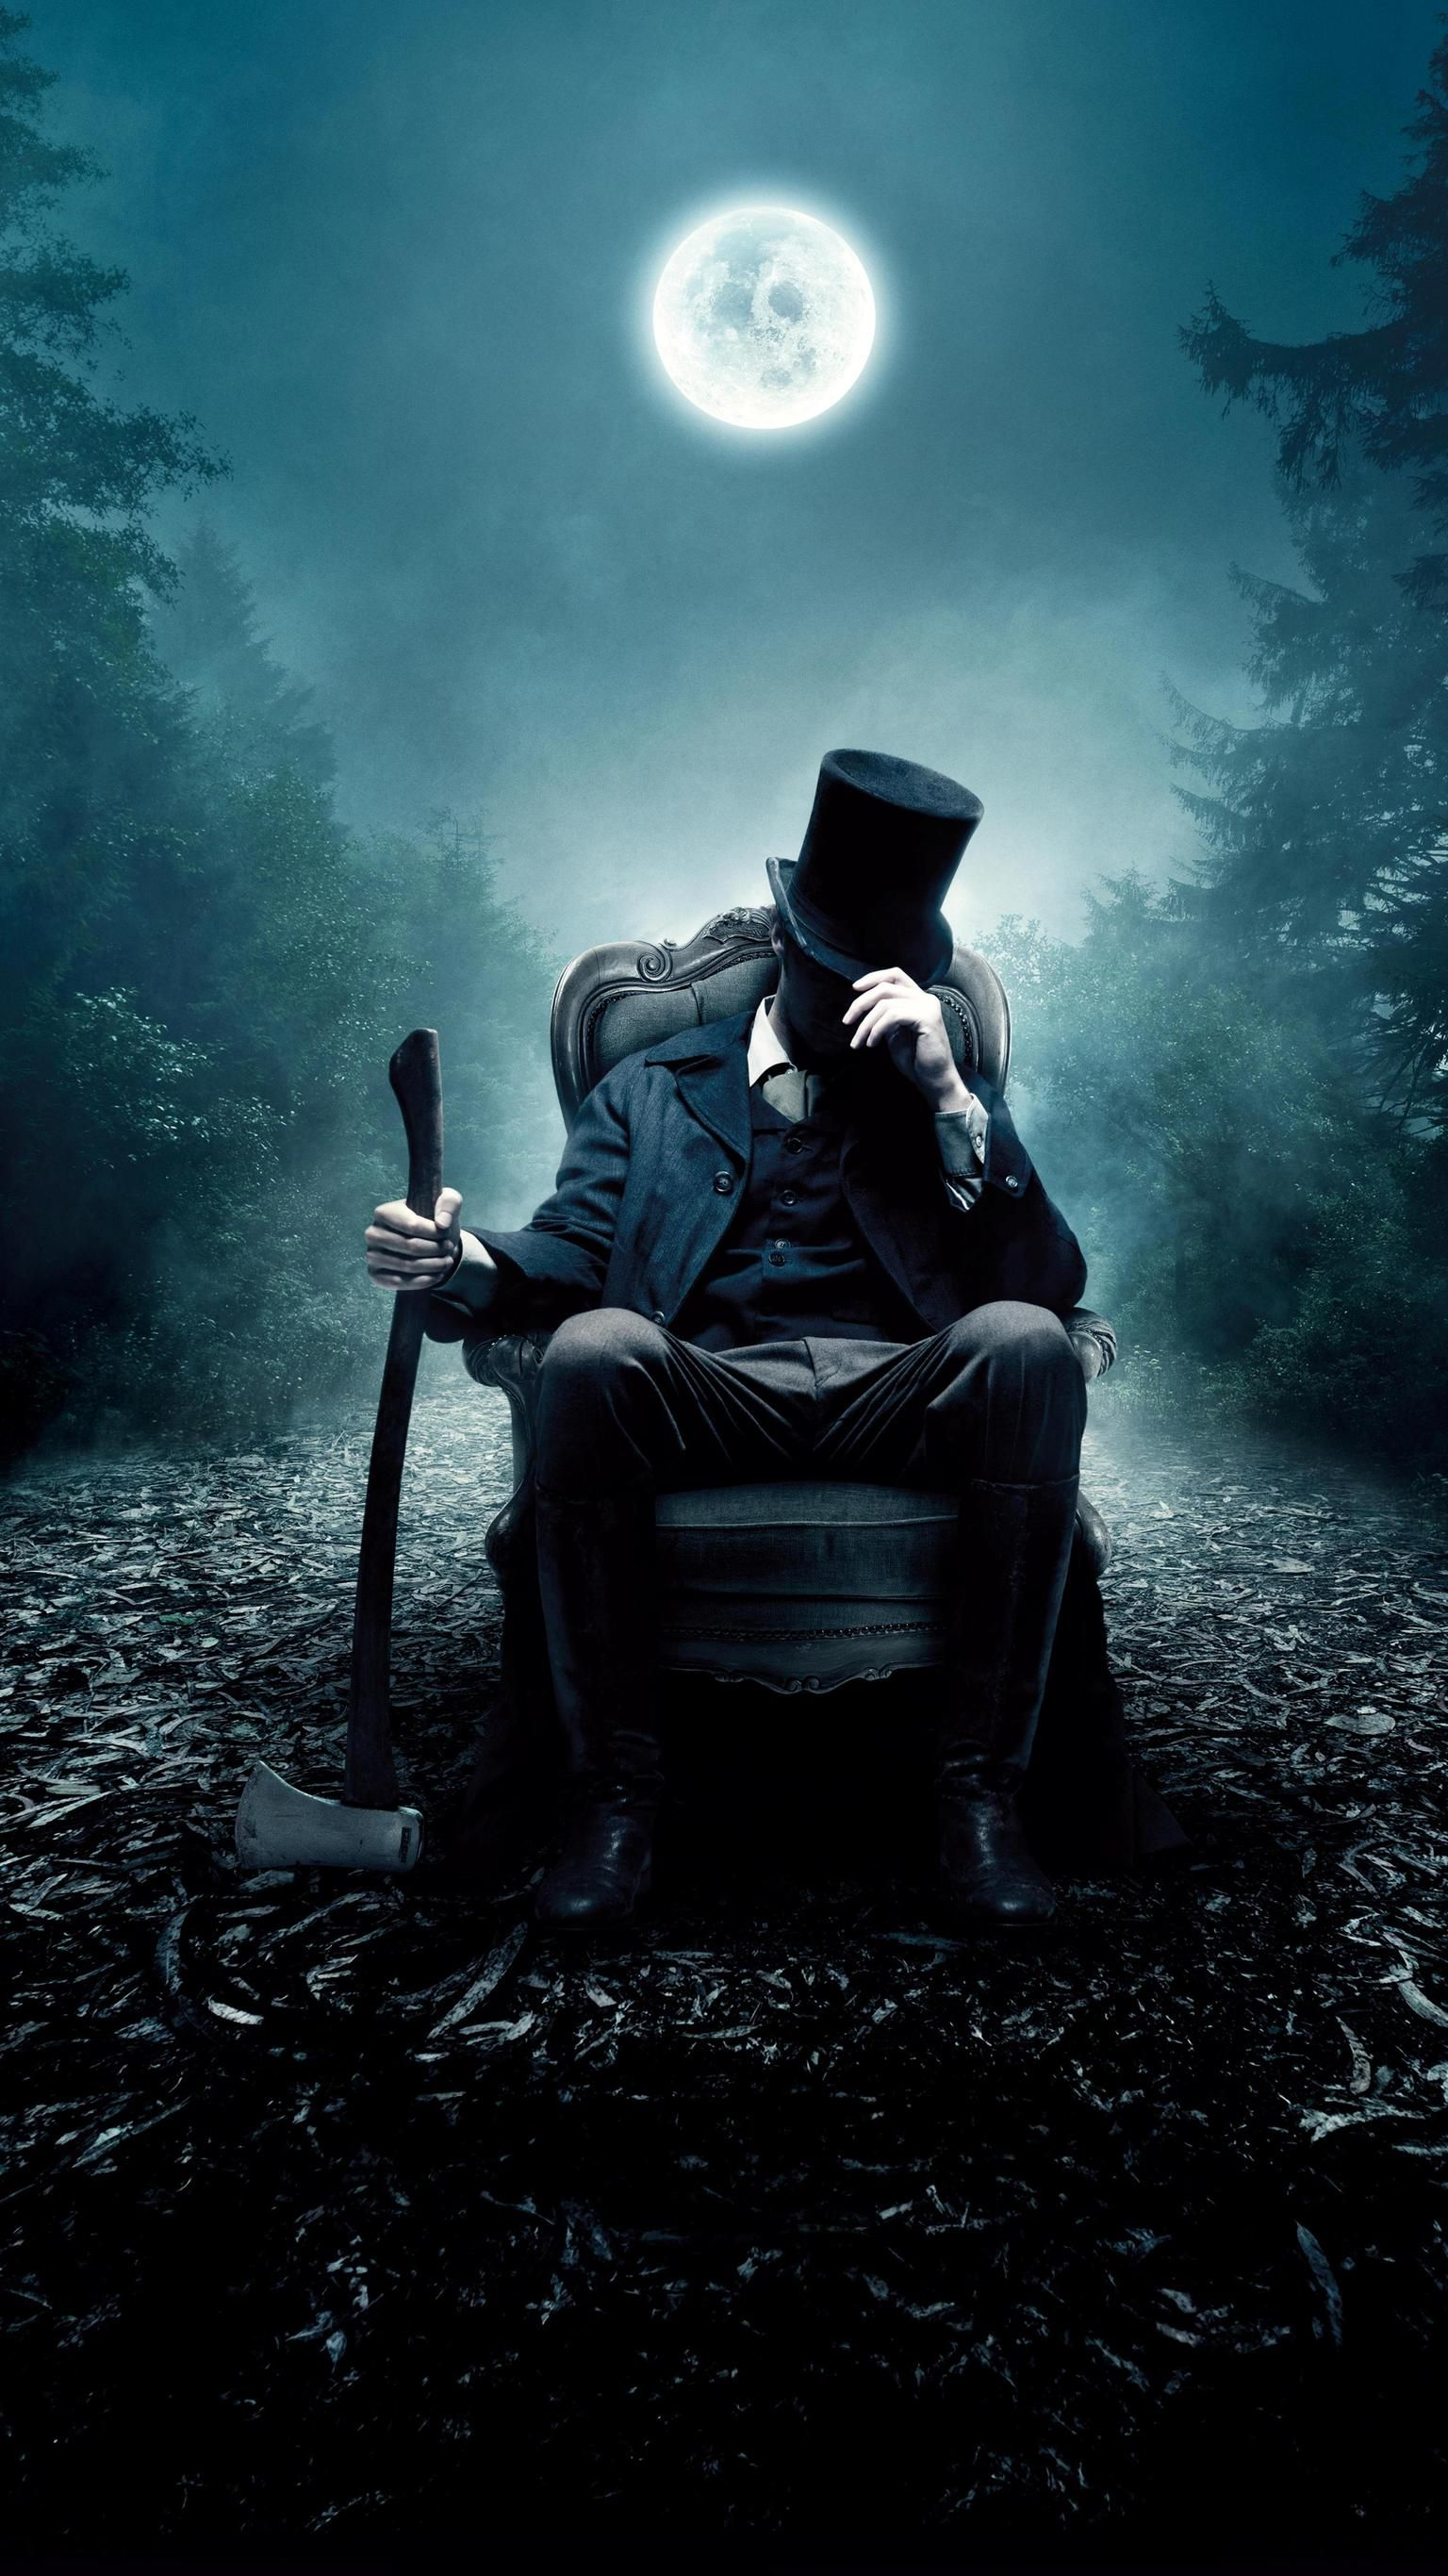 Abraham Lincoln Vampire Hunter 2012 Phone Wallpaper Moviemania Horror Wallpapers Hd Mobile Wallpaper Iphone 6s Wallpaper